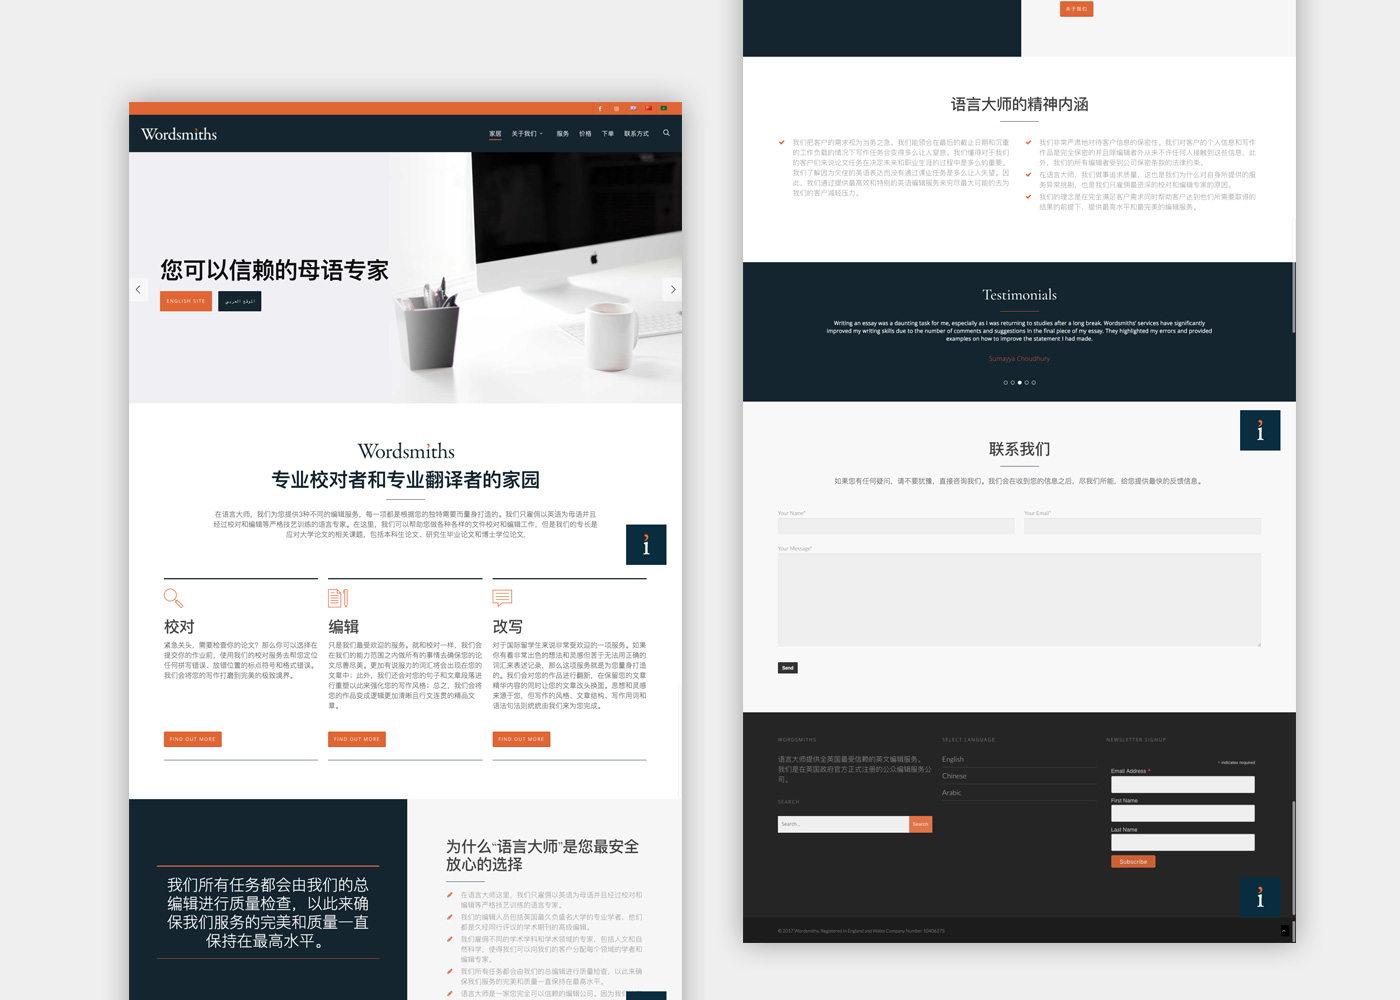 Wordsmiths Web Design Chinese Version